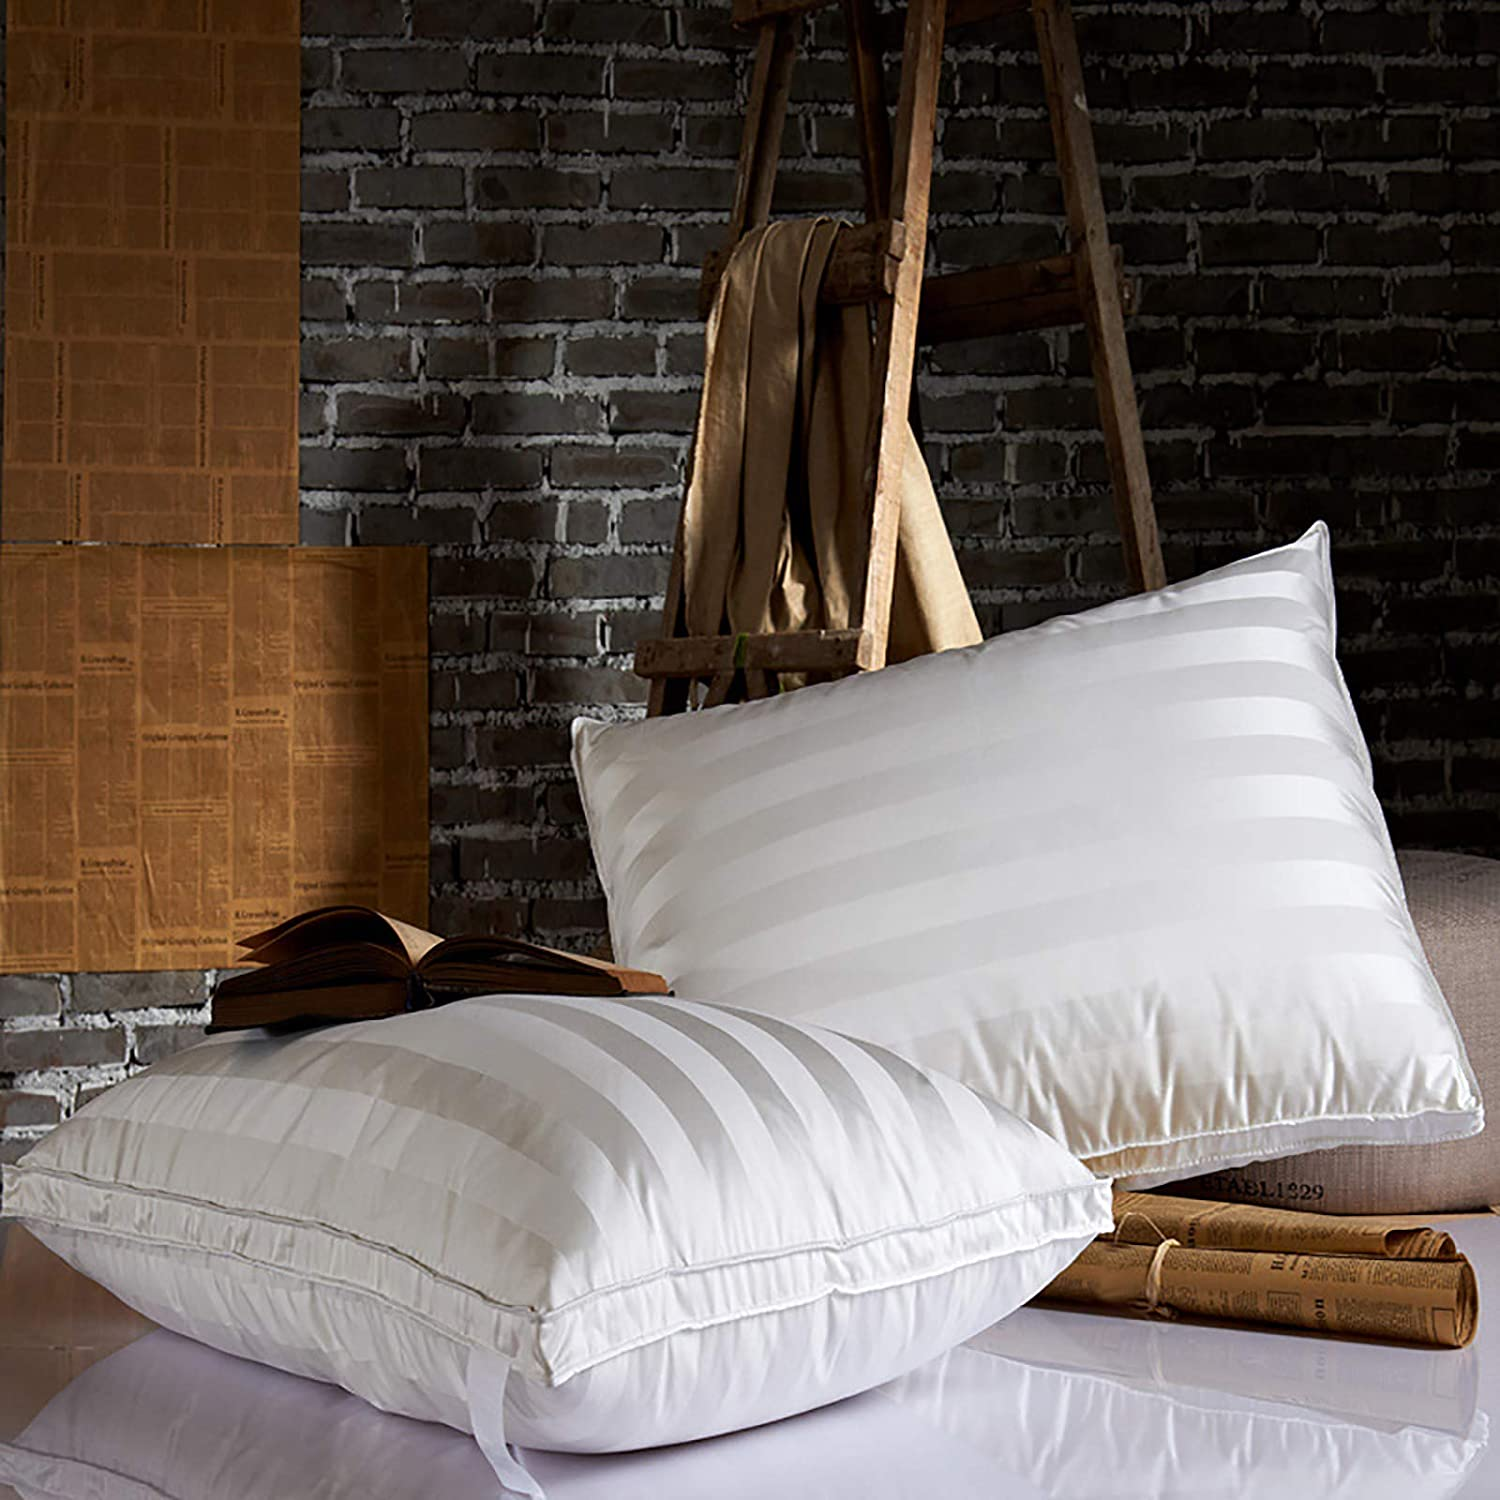 Don't miss the campaign ZJING Goose Down Sleep Pillow Soft Indoor Luxurious Memphis Mall Bed